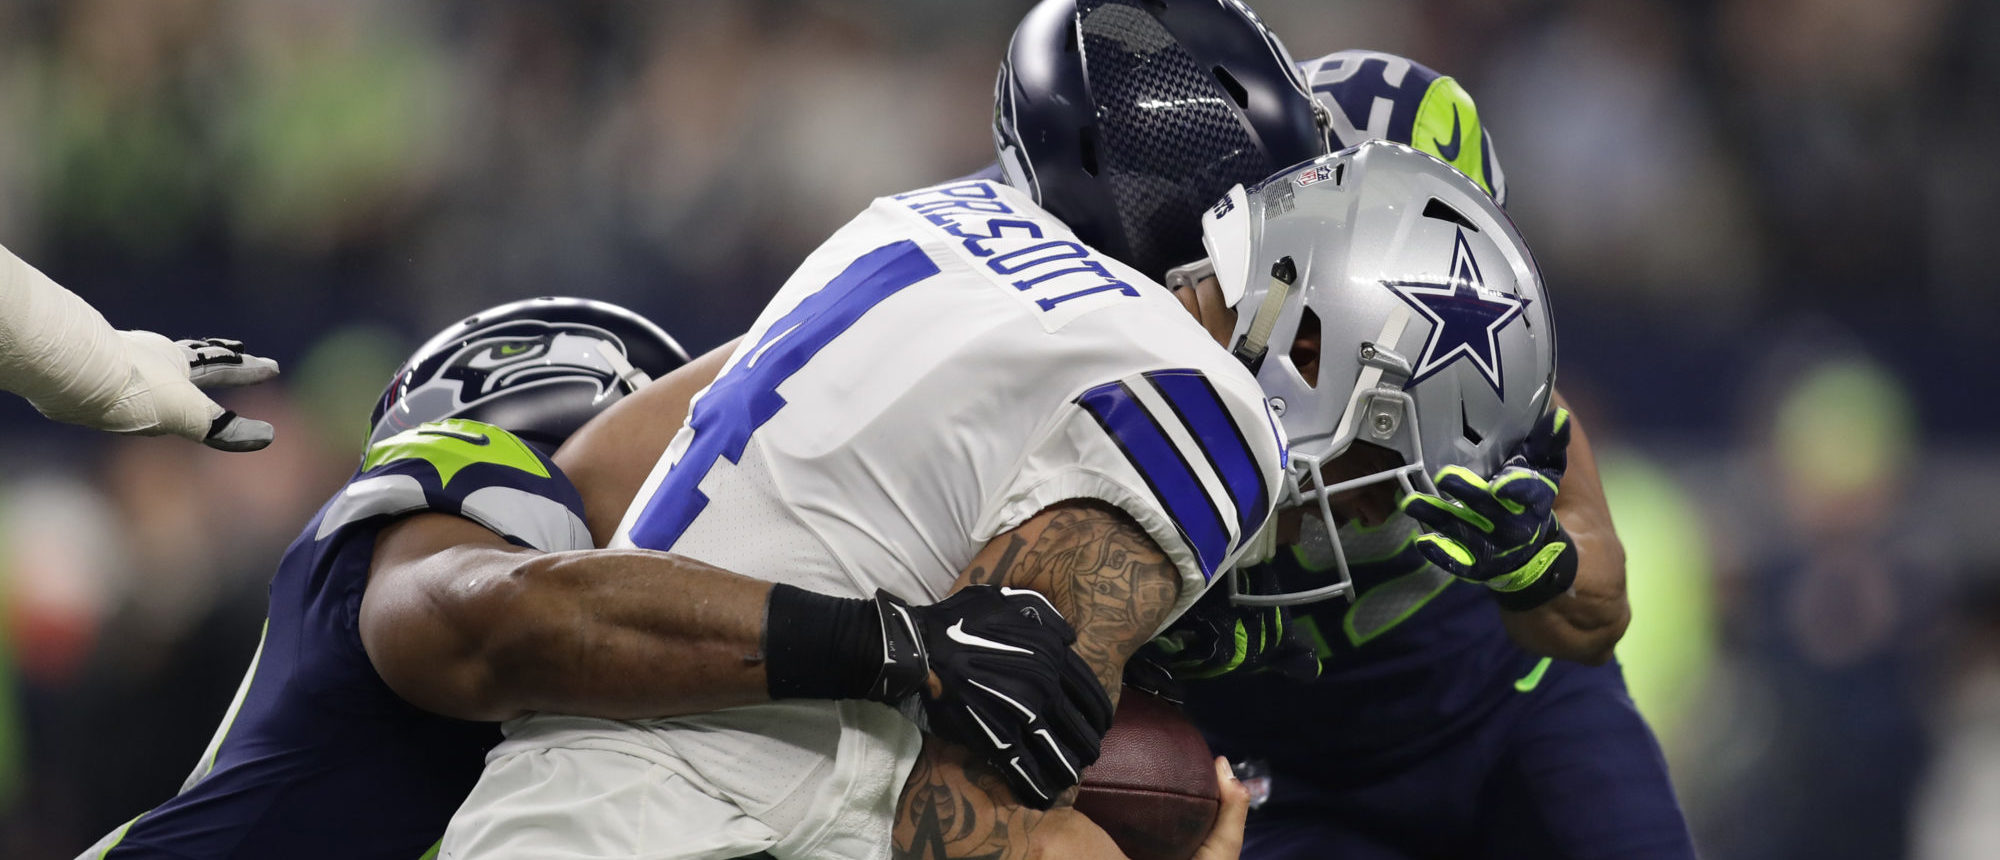 Dallas Cowboys quarterback Dak Prescott (4) is hit in the helmet by the Seattle Seahawks free safety Earl Thomas (29) at AT&T Stadium in Arlington, Texas. Photo: Erich Schlegel-USA TODAY Sports